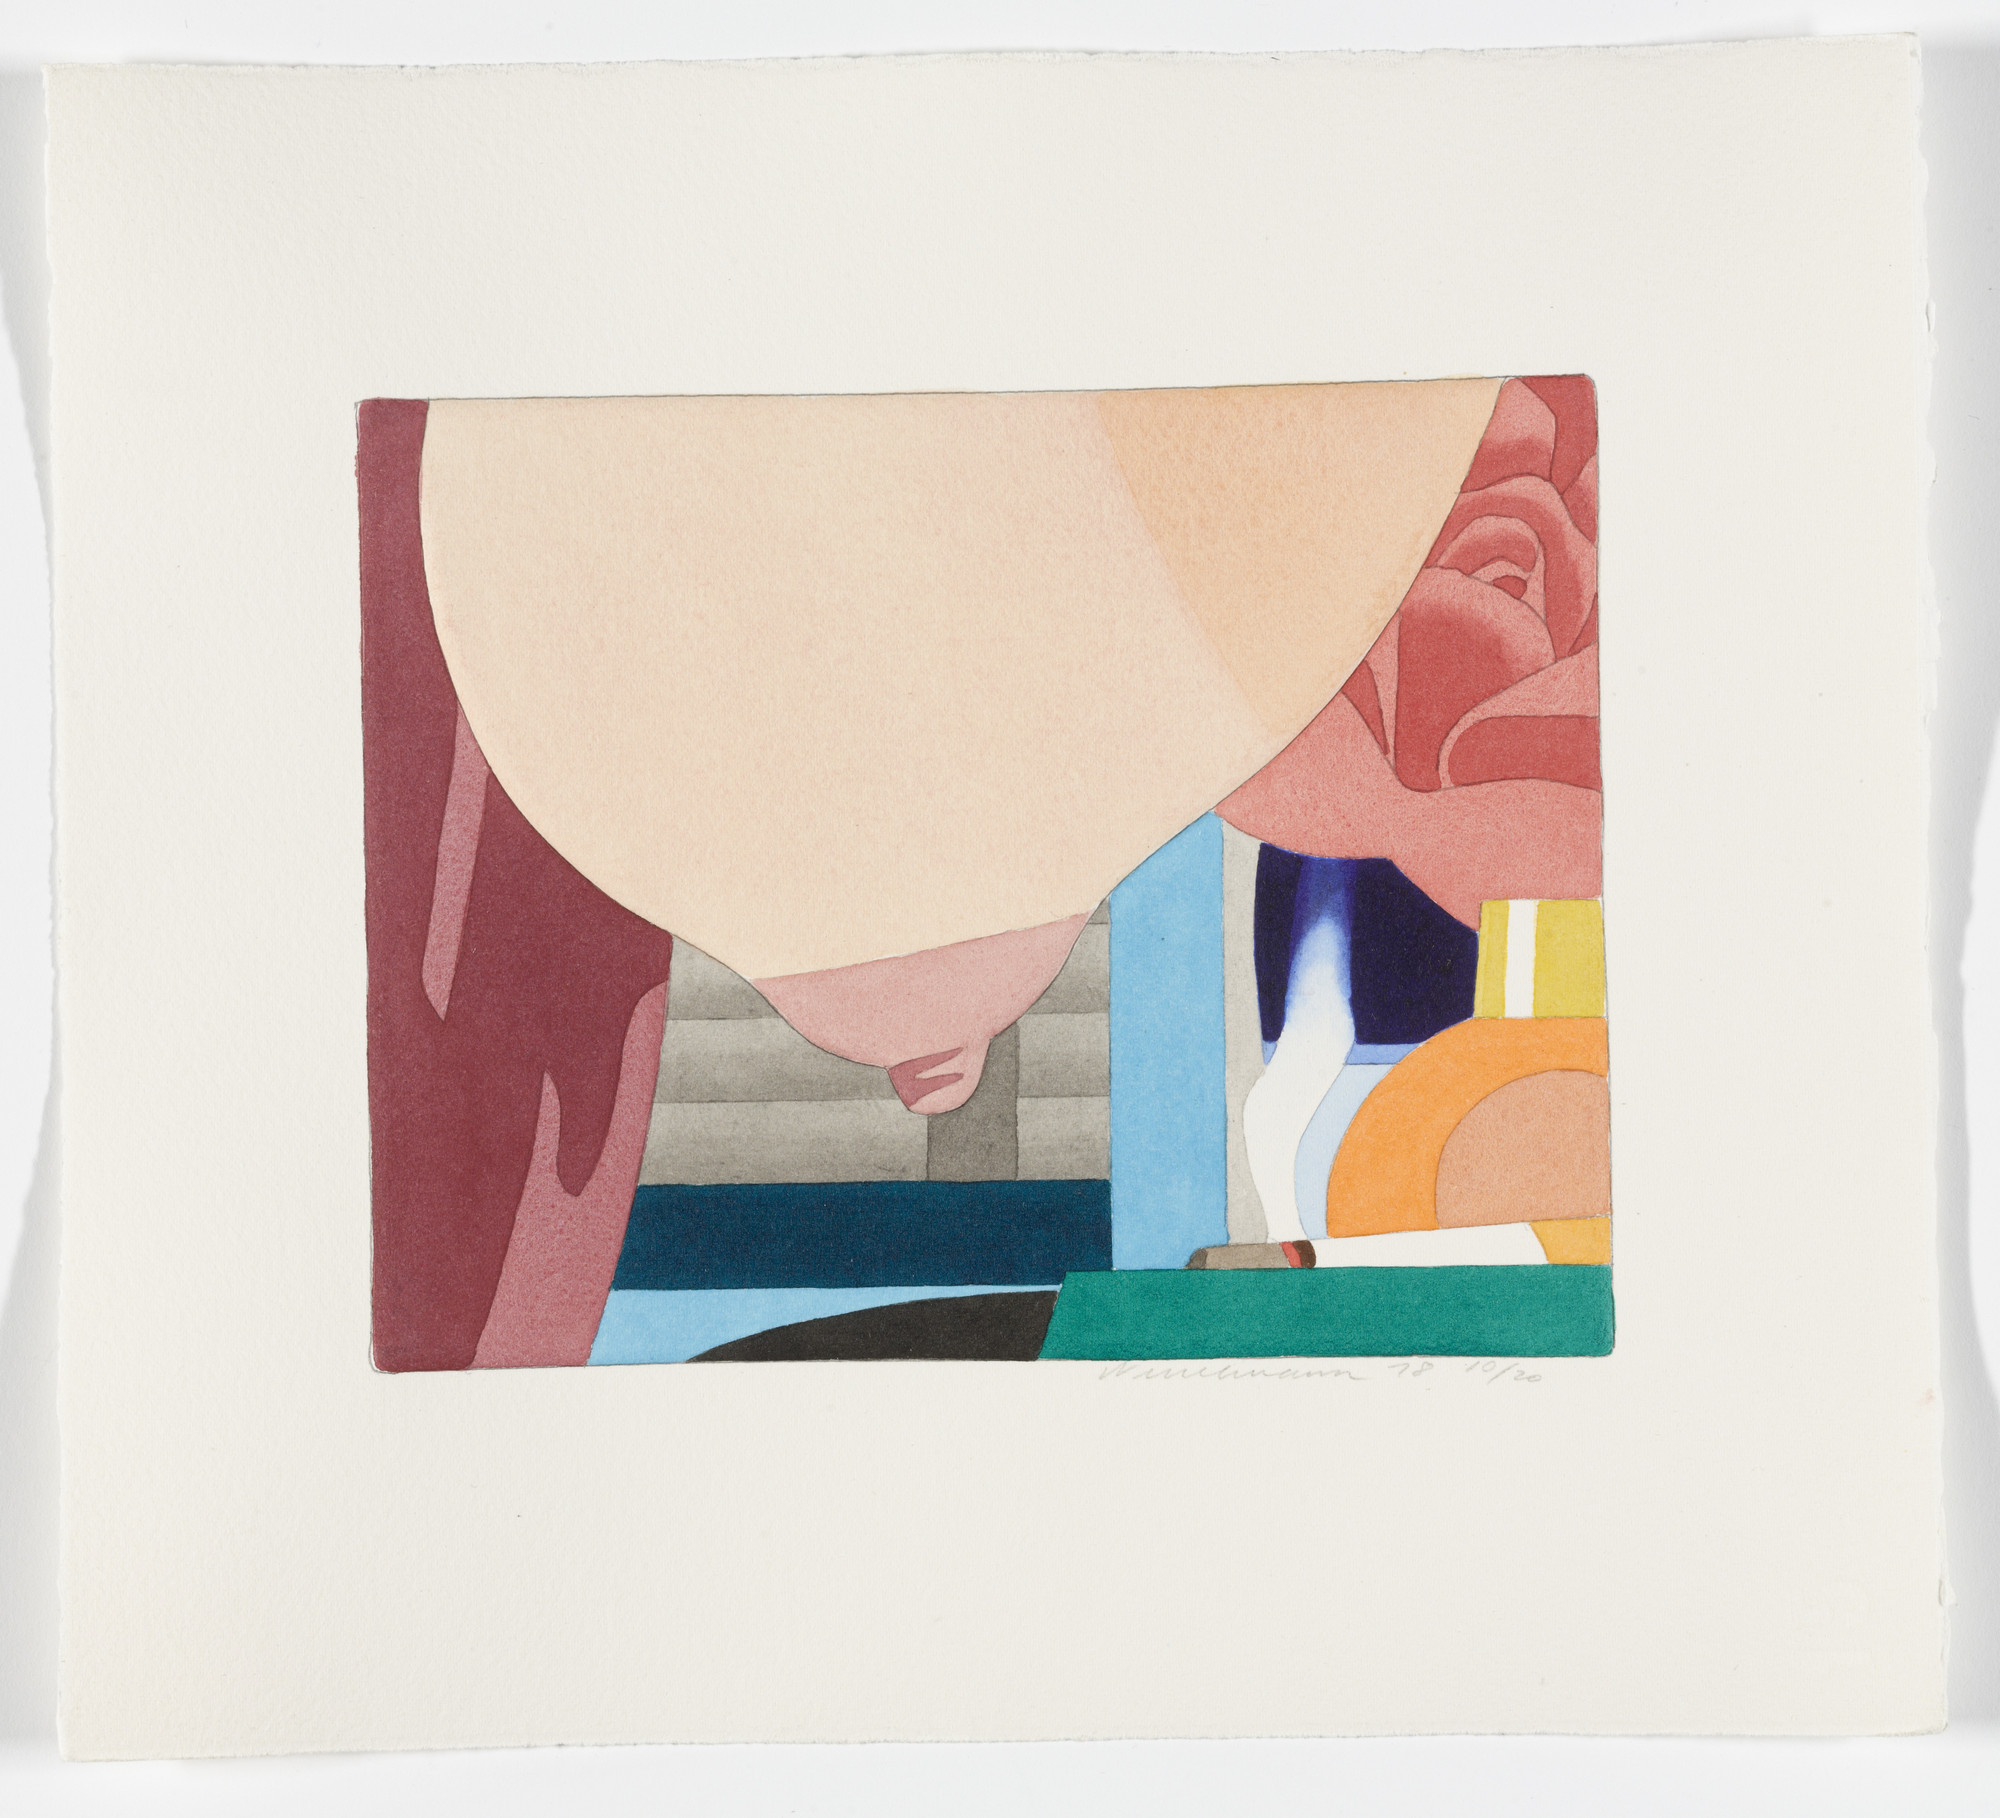 Tom Wesselmann. Untitled from Bedroom Portfolio, _Untitled from_ Bedroom Portfolio. 1978-1979